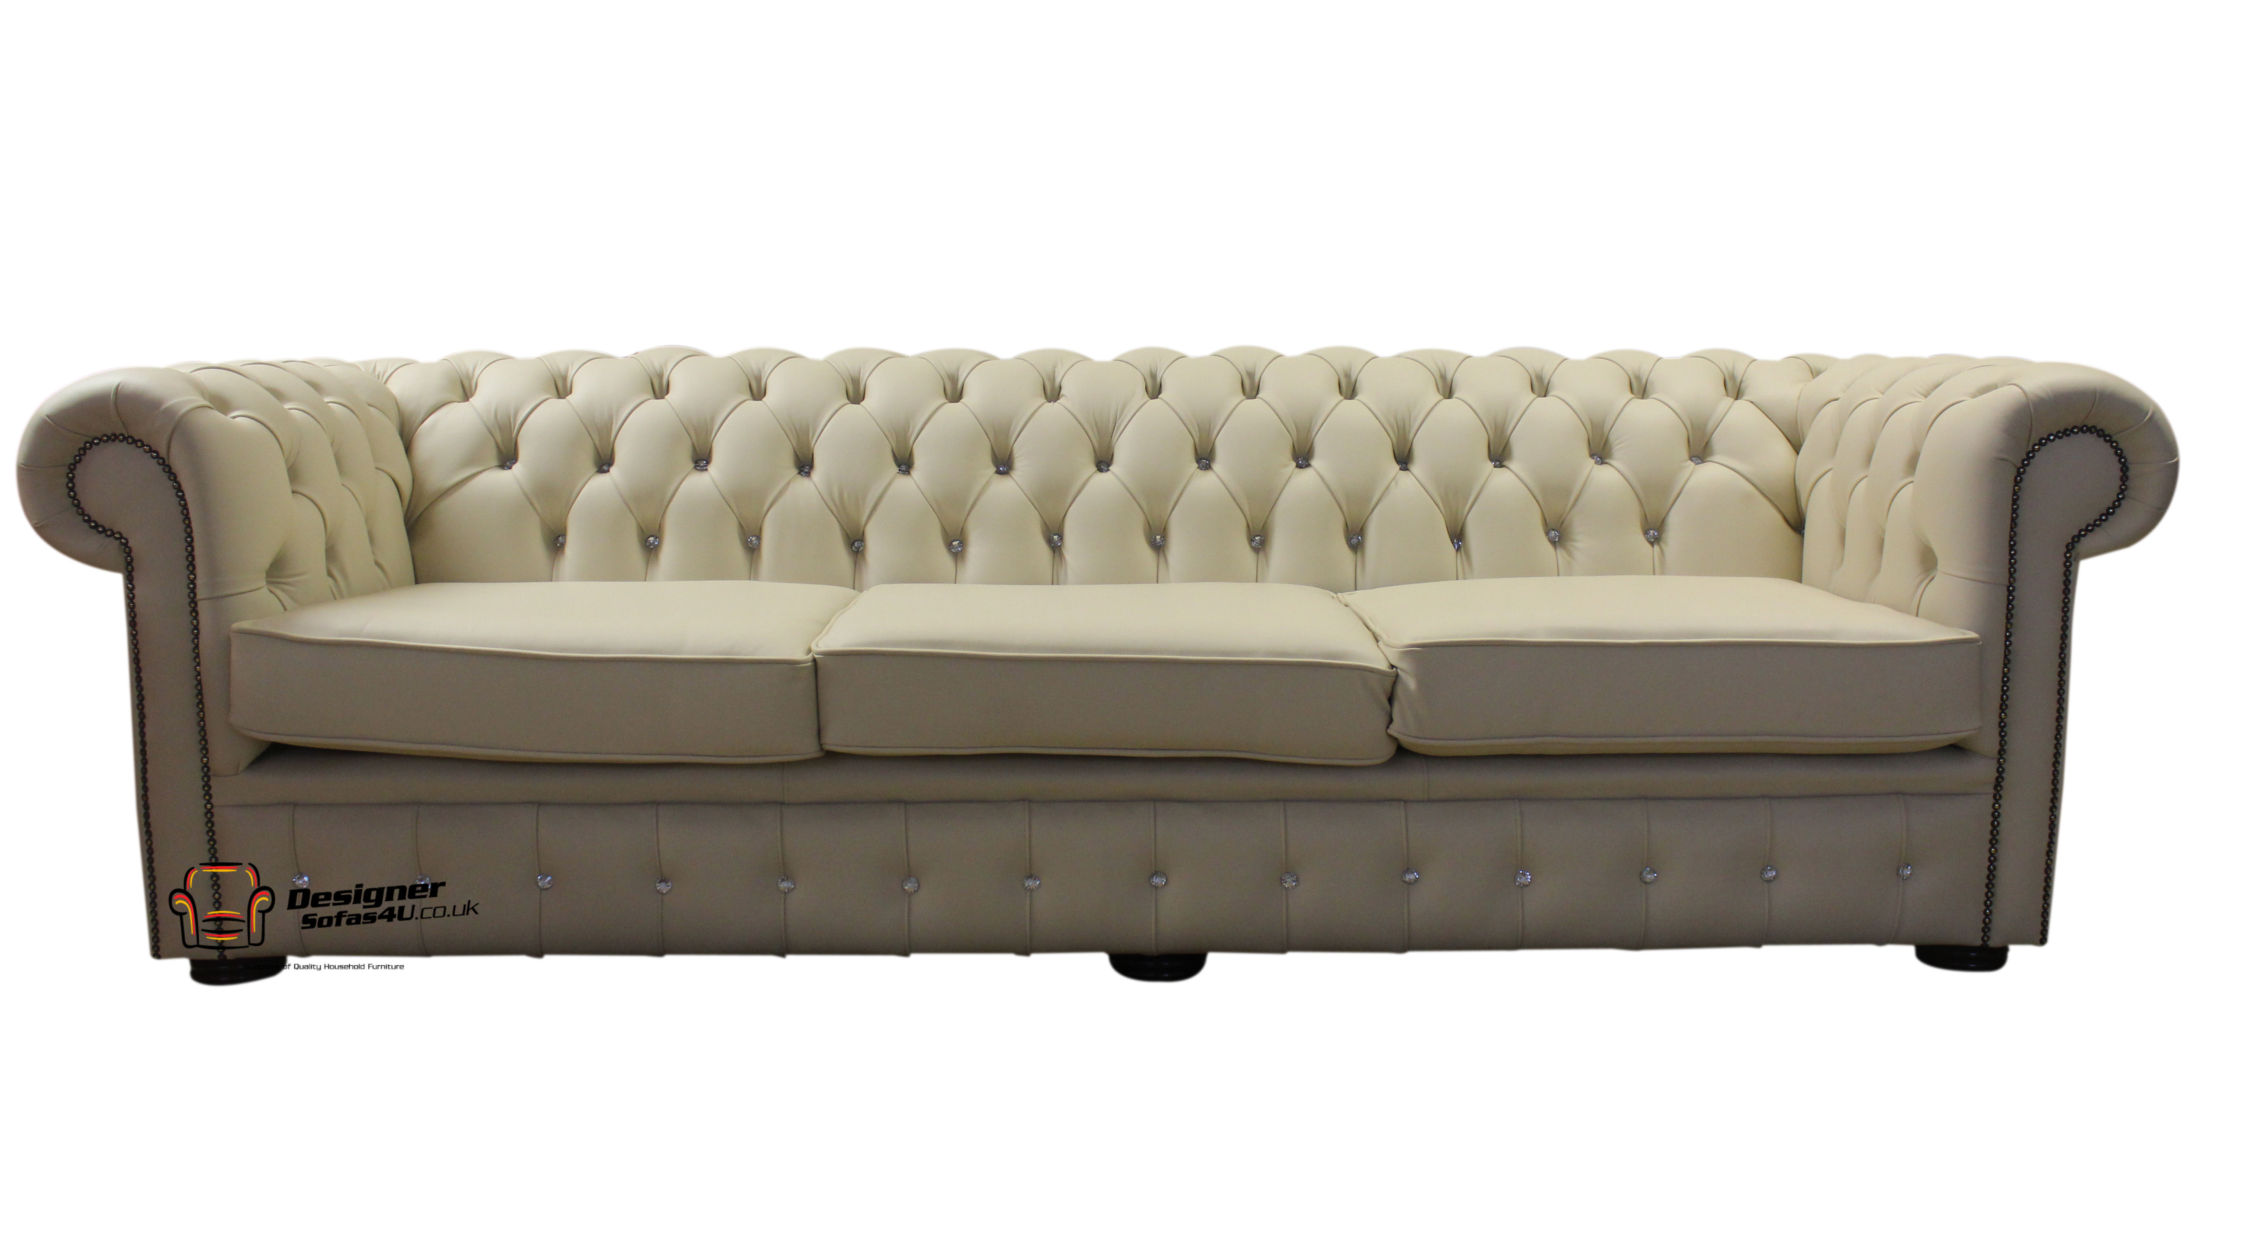 Designer Sofas 4u Review | Savae.org